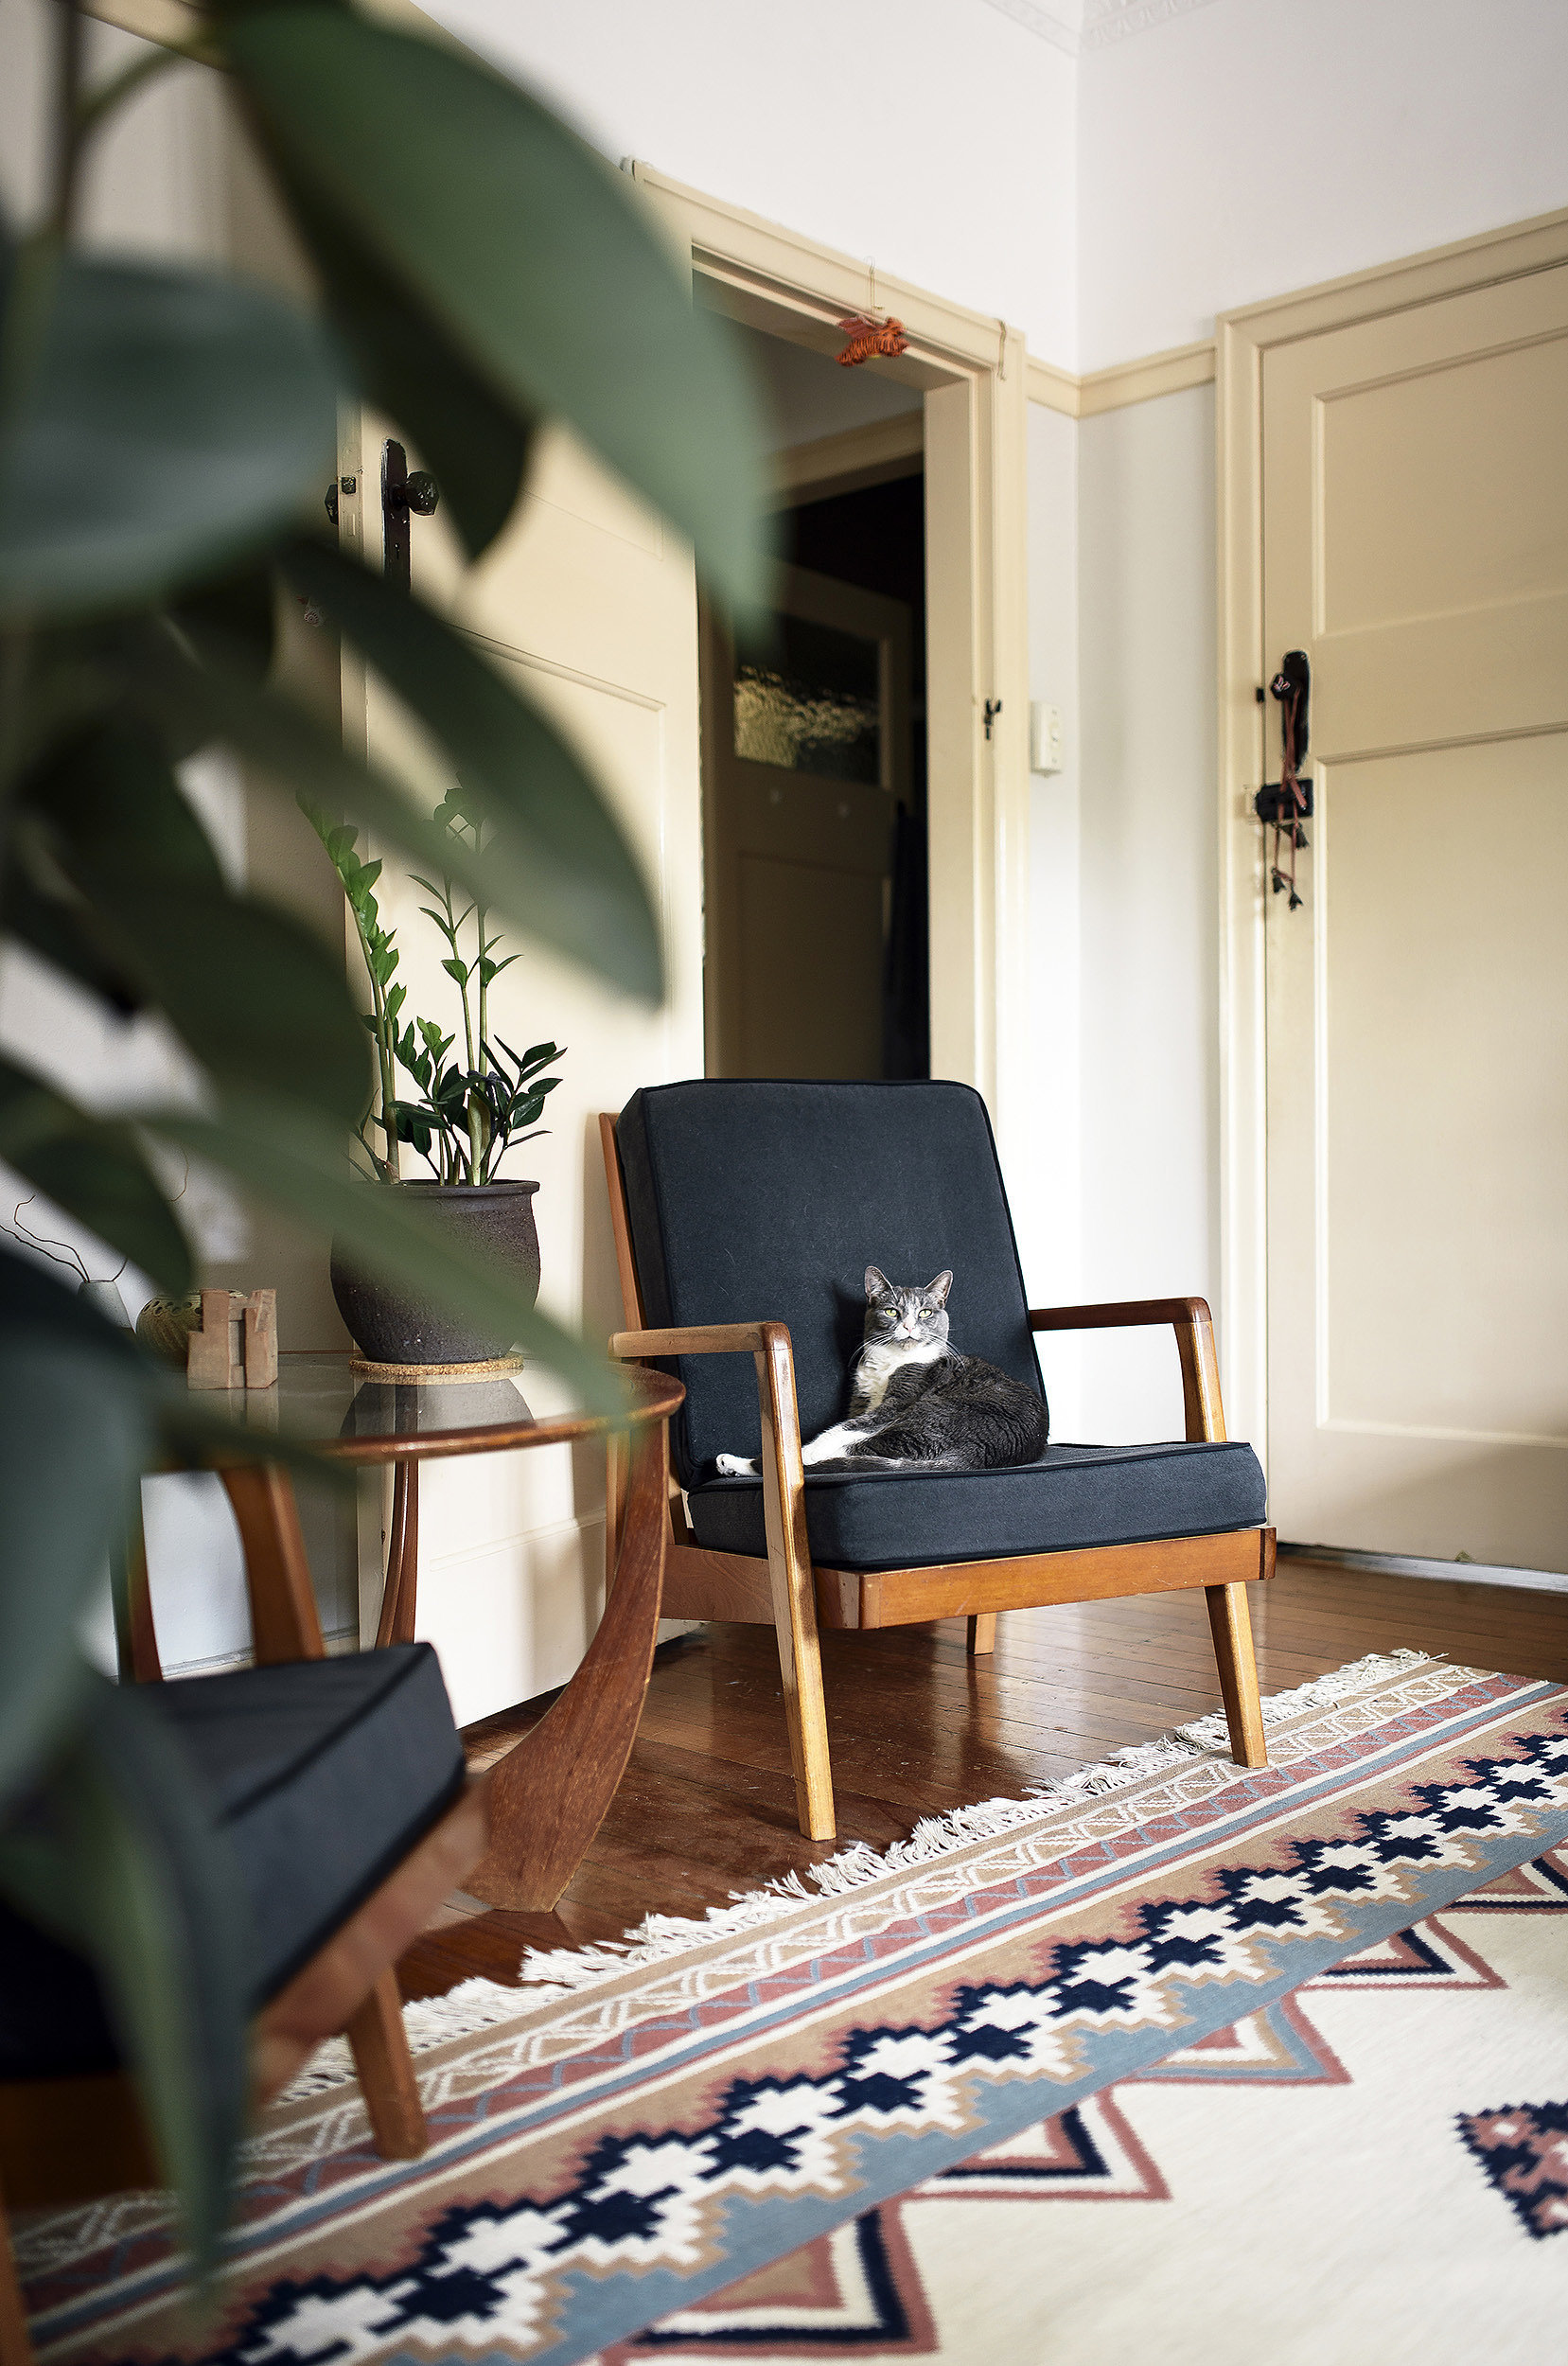 Even the cat feels at home on the lovely danish style for Room design reddit